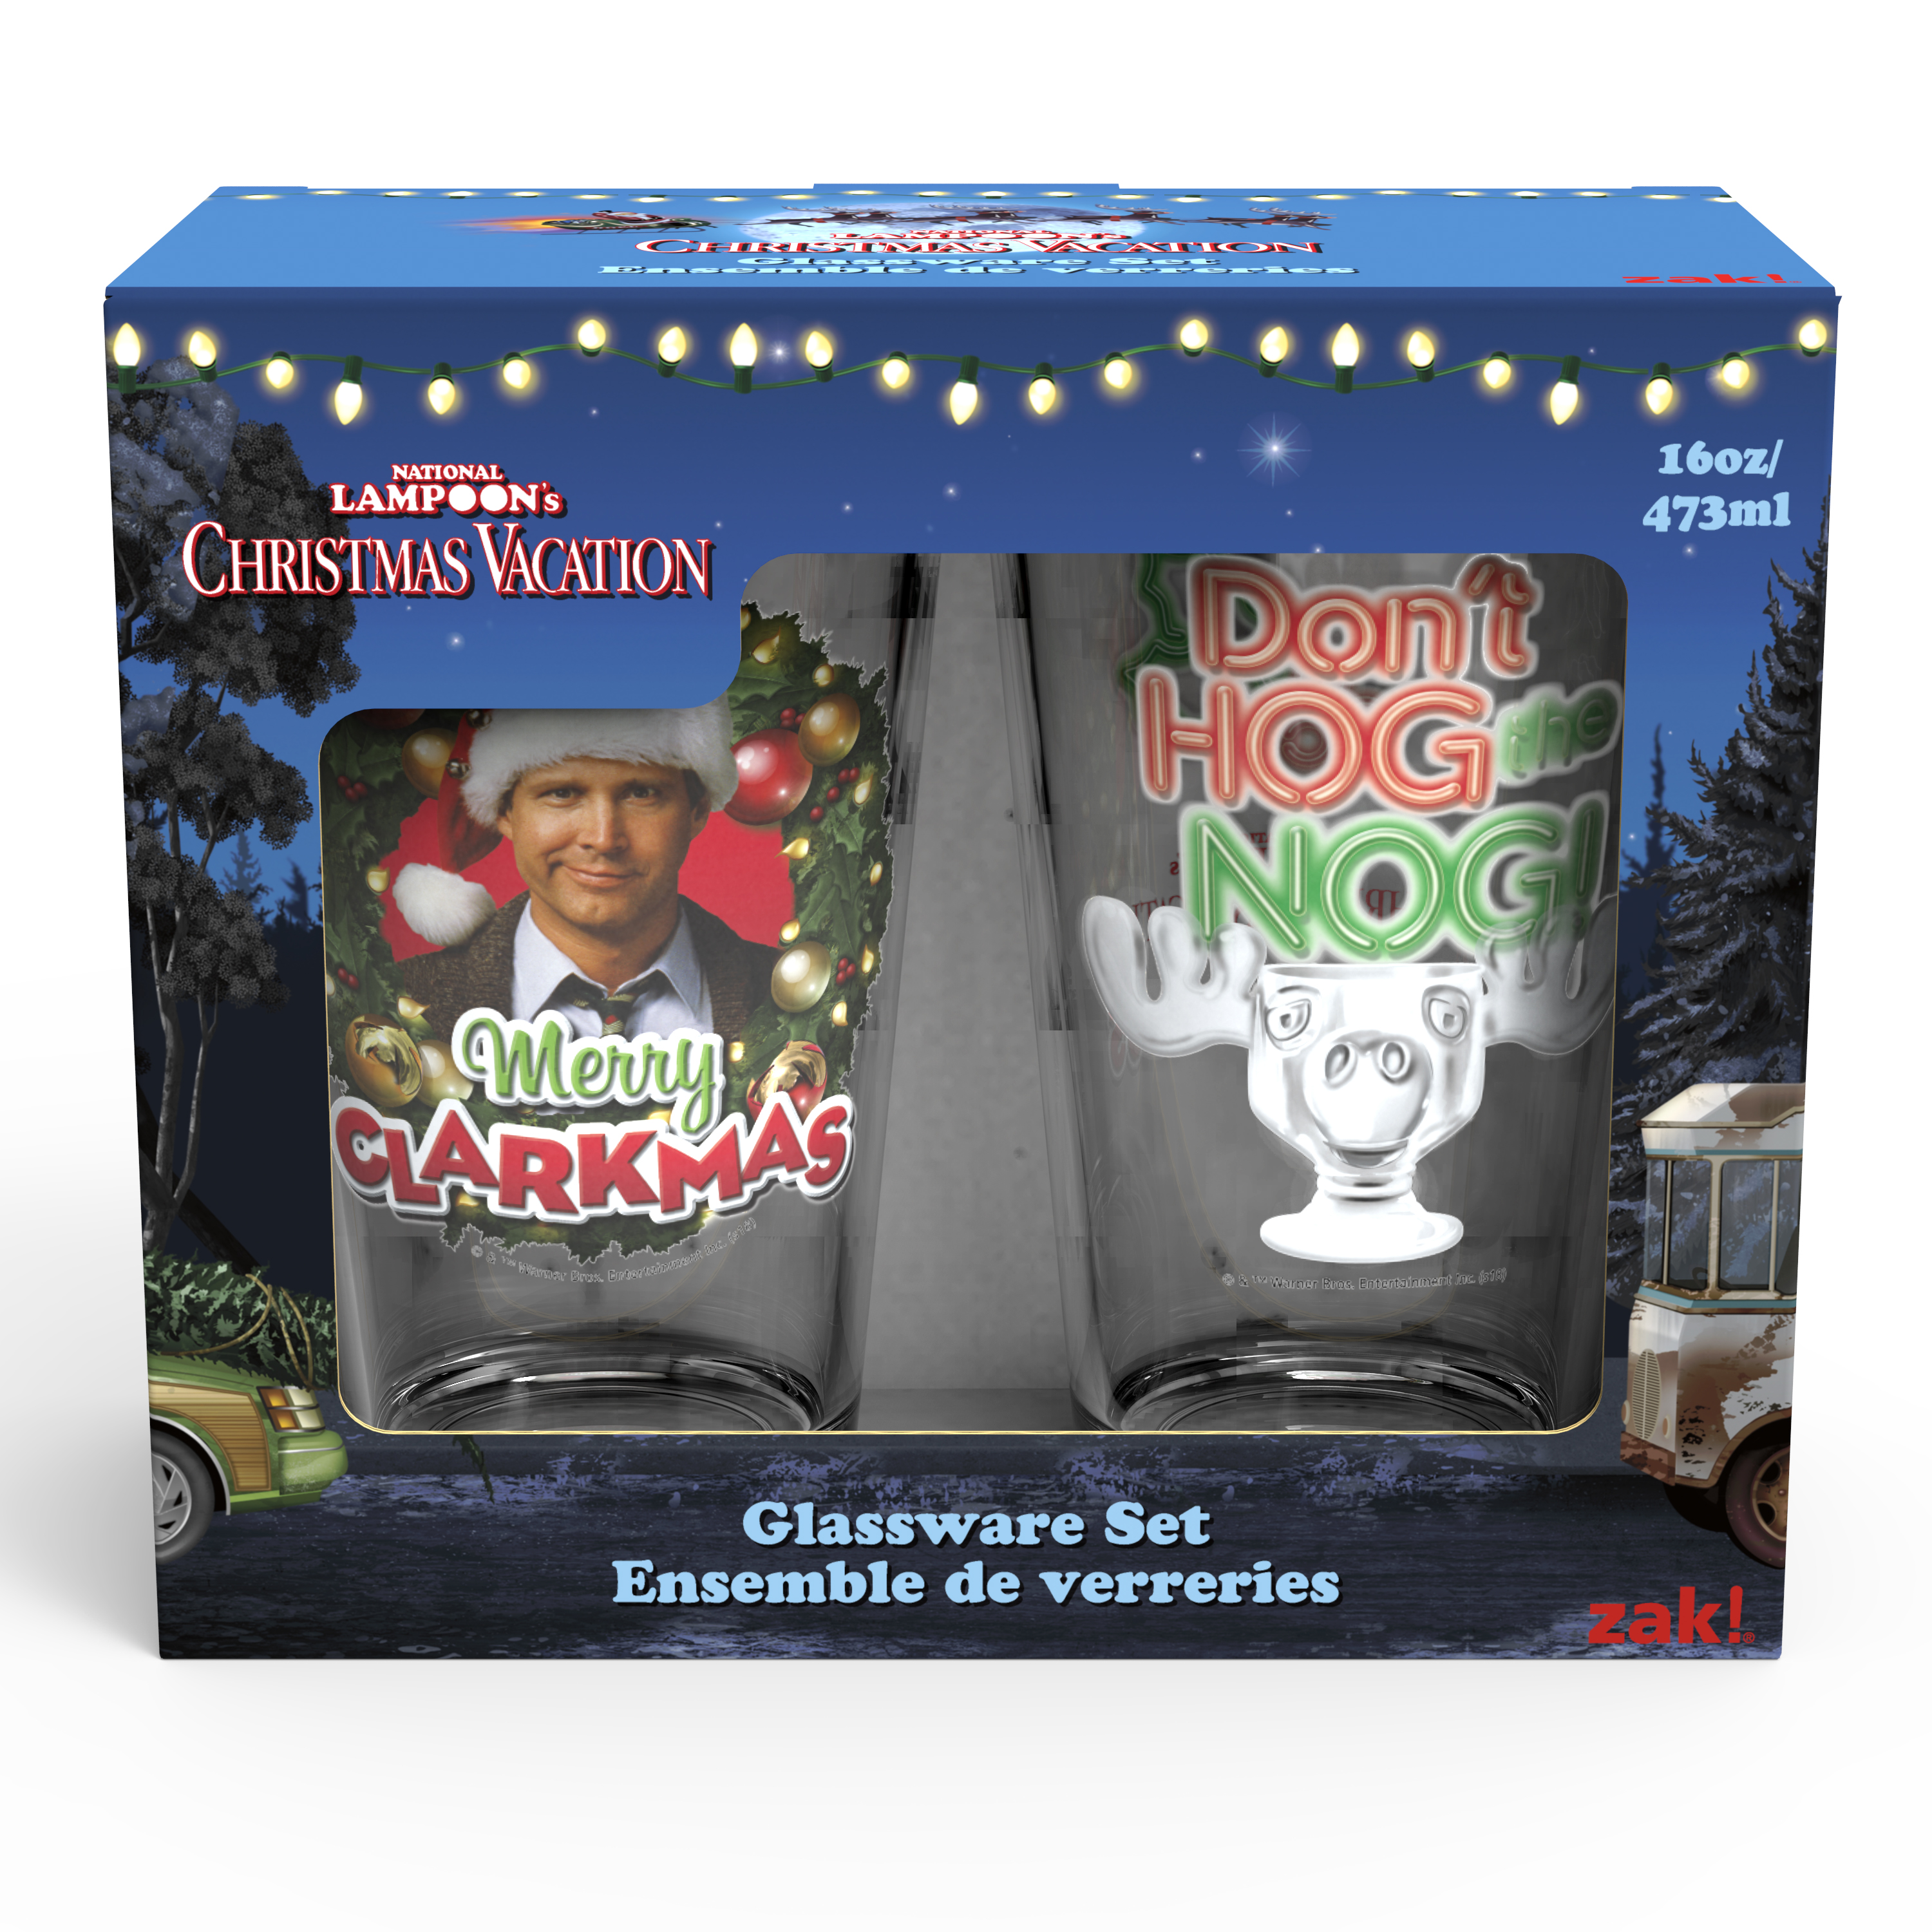 National Lampoon's Christmas Vacation 16 ounce Pint Glasses, Clark Griswold, 2-piece set slideshow image 6